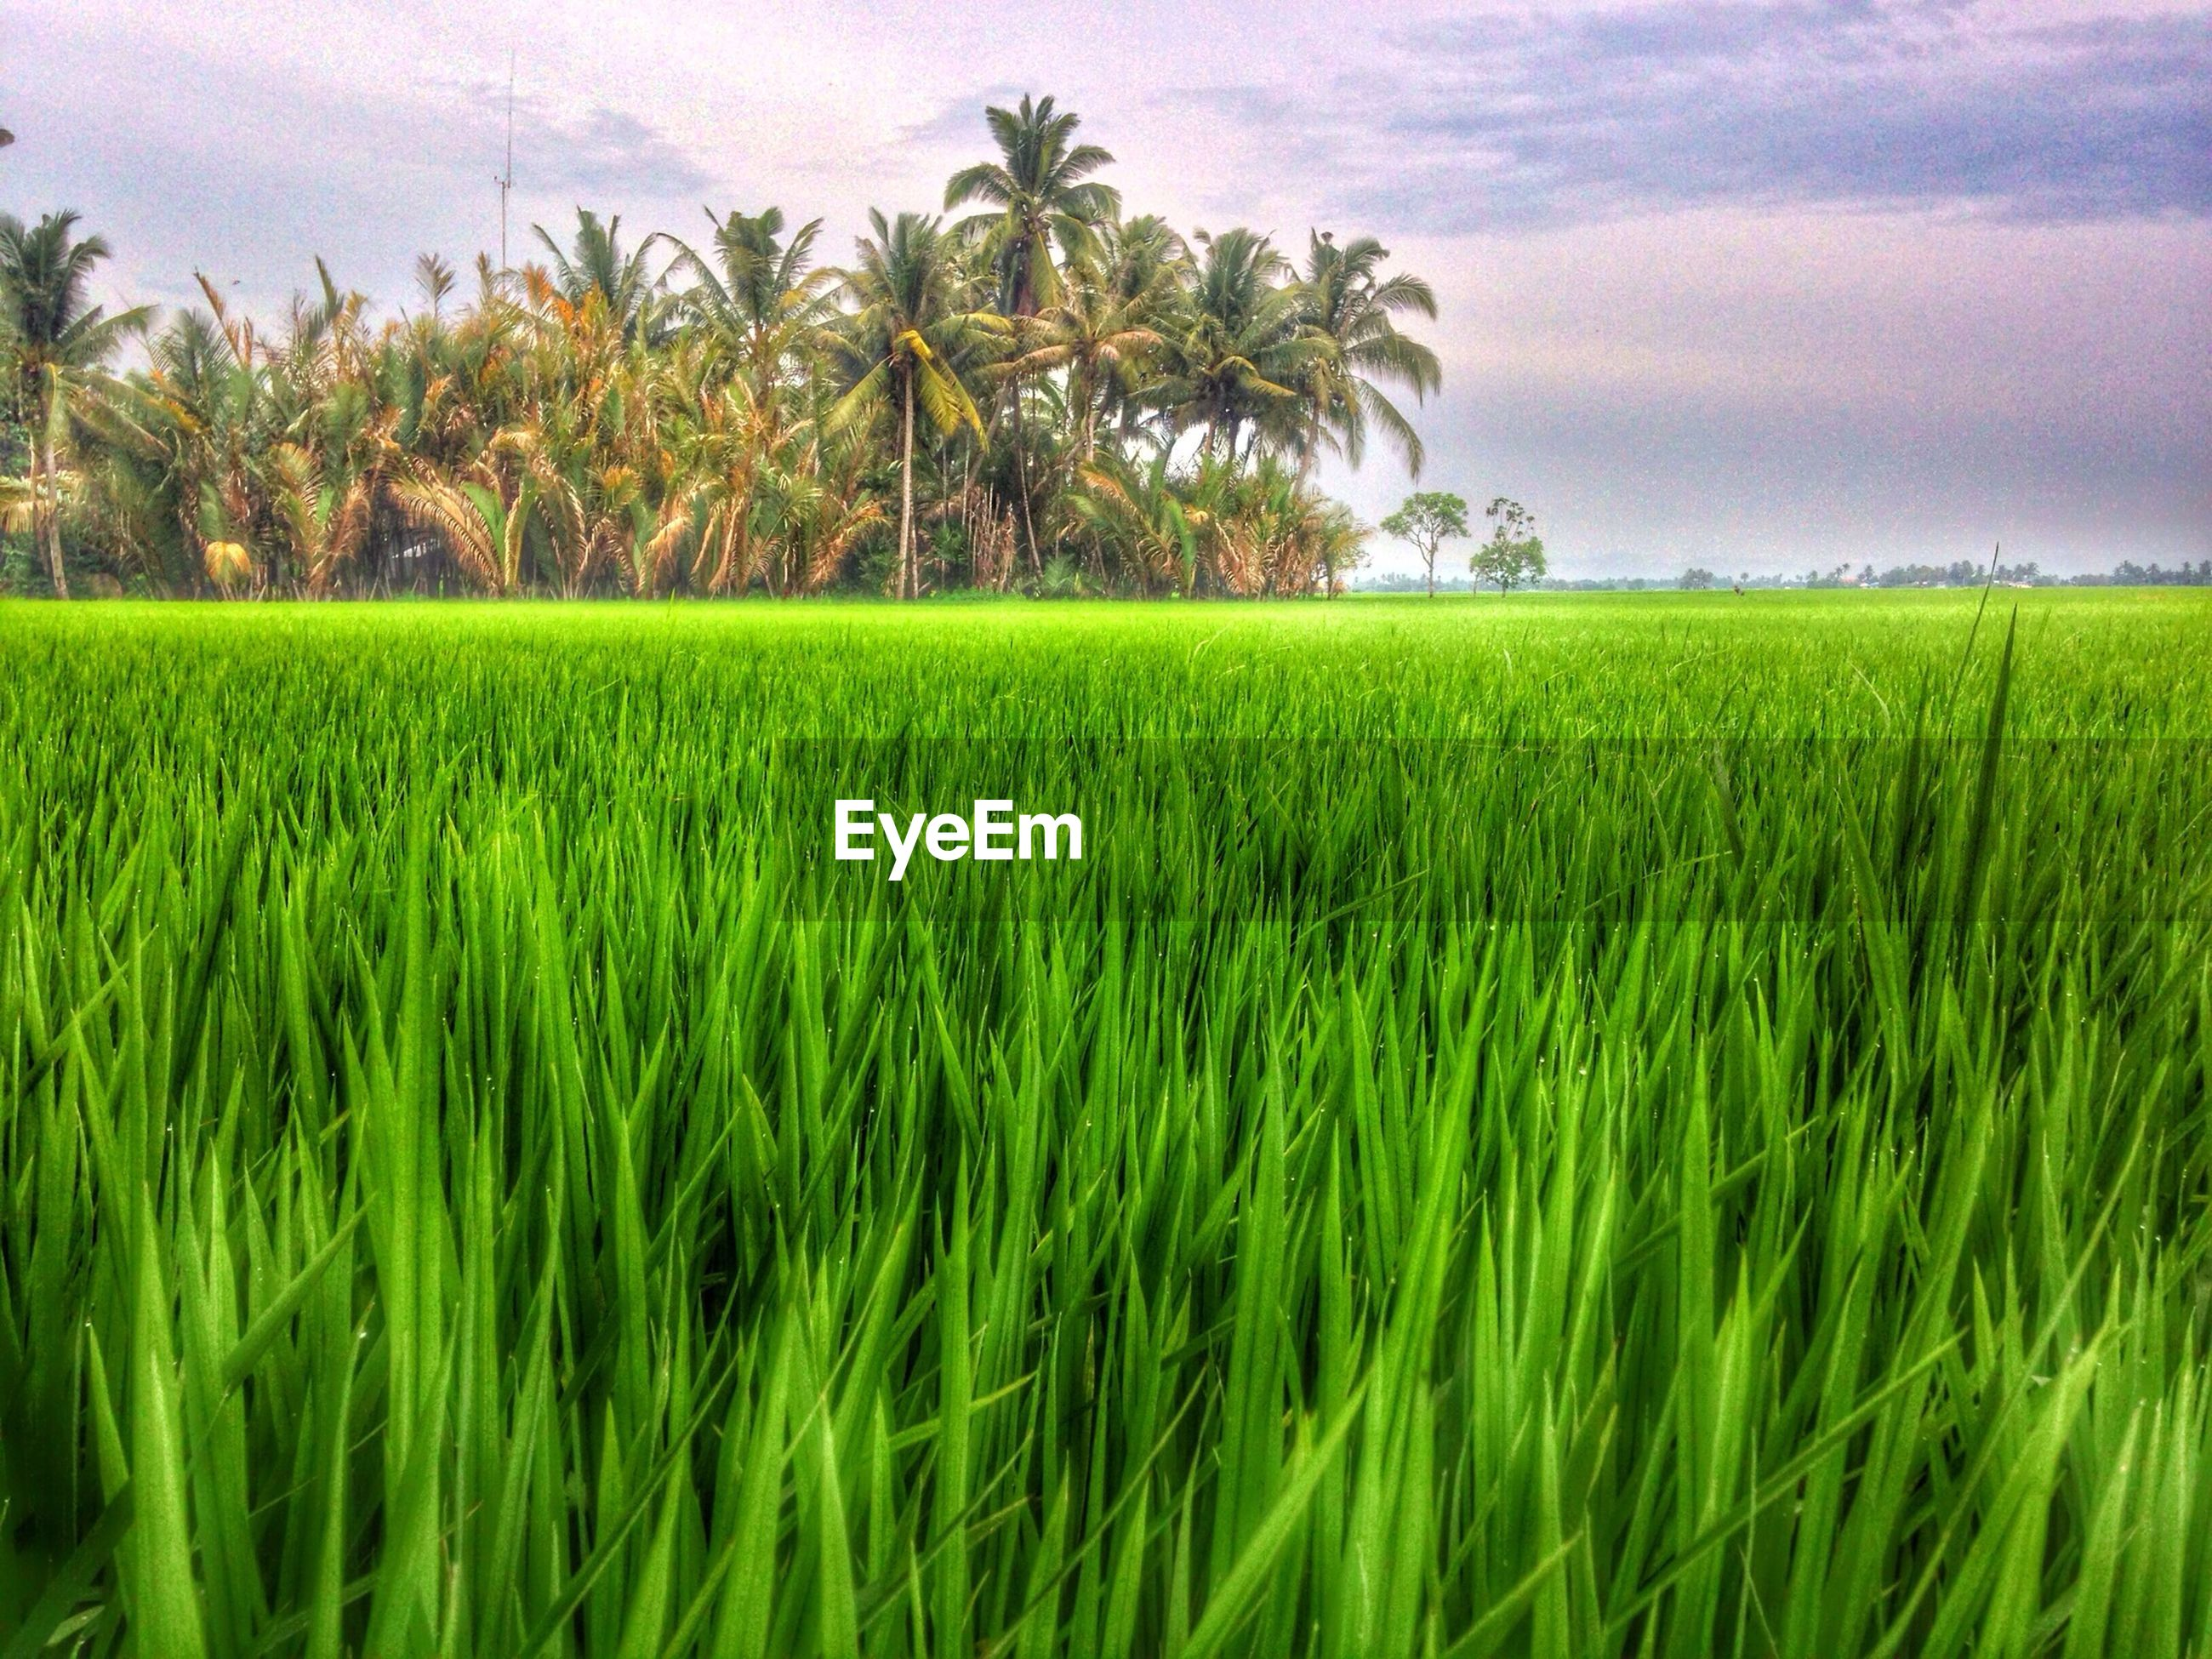 field, growth, agriculture, tranquility, tranquil scene, rural scene, green color, sky, landscape, crop, beauty in nature, nature, farm, scenics, grass, tree, cultivated land, green, cloud - sky, idyllic